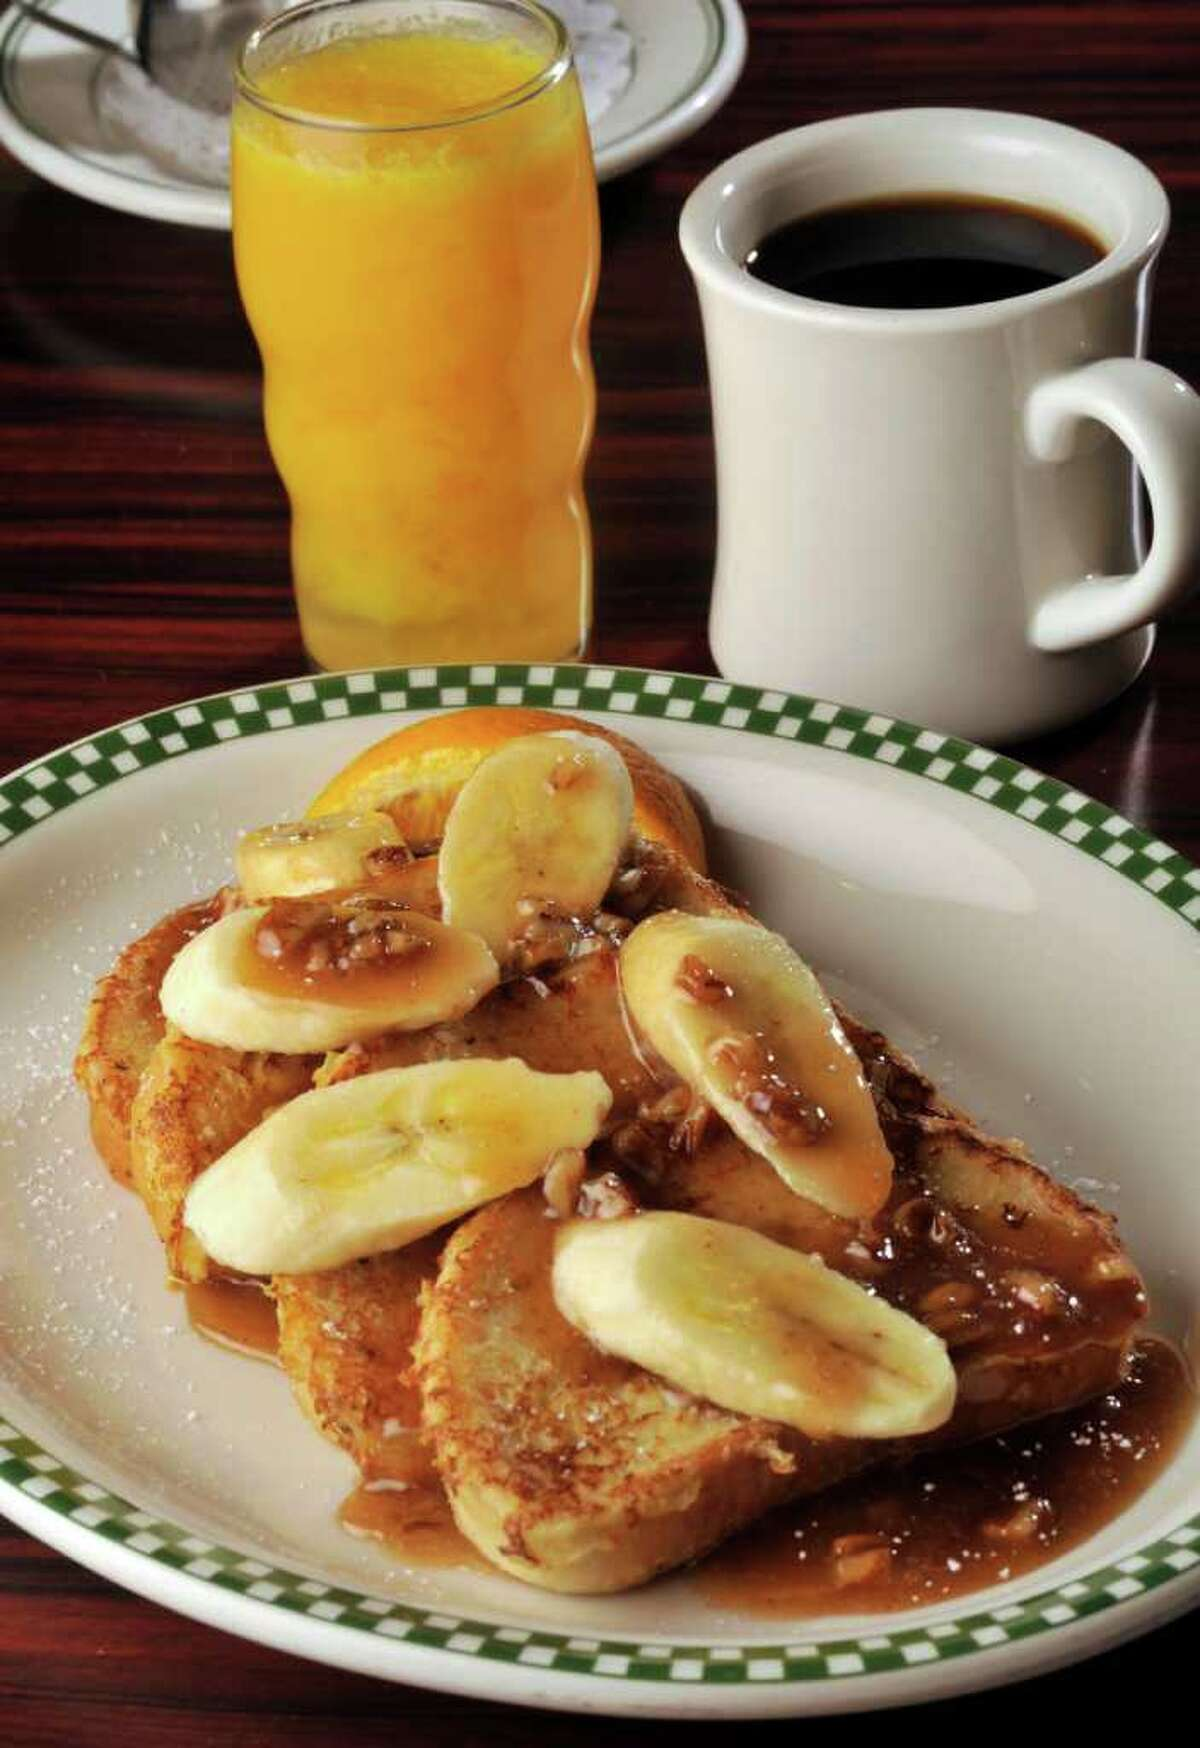 Bananas Foster French Toast is another breakfast specialty at the North Side restaurant that's been open for 11 years.